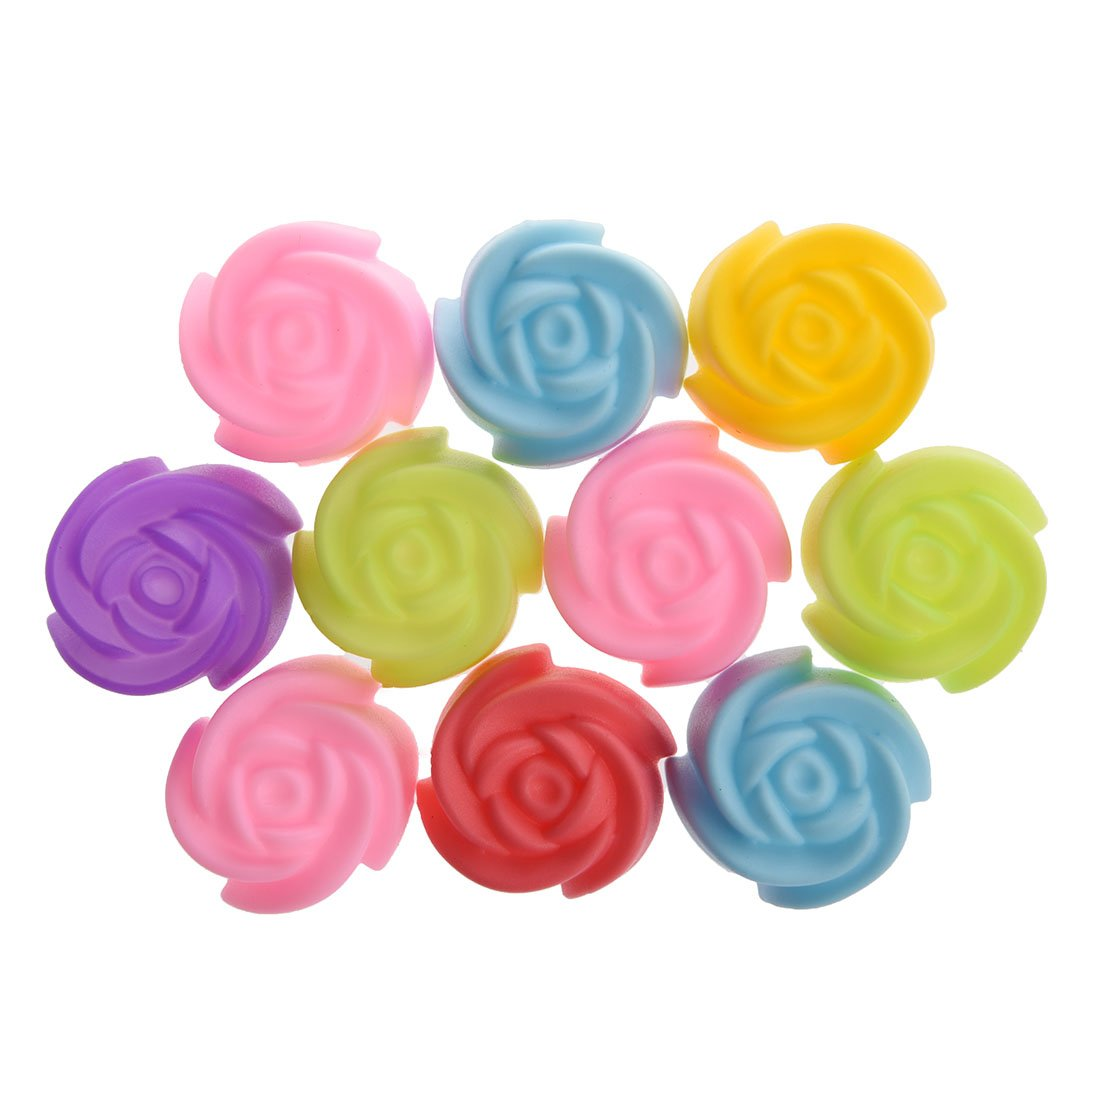 10Psc Silicone Rose Muffin Cookie Cup Cake Baking Mold Cake Decorating Supplies